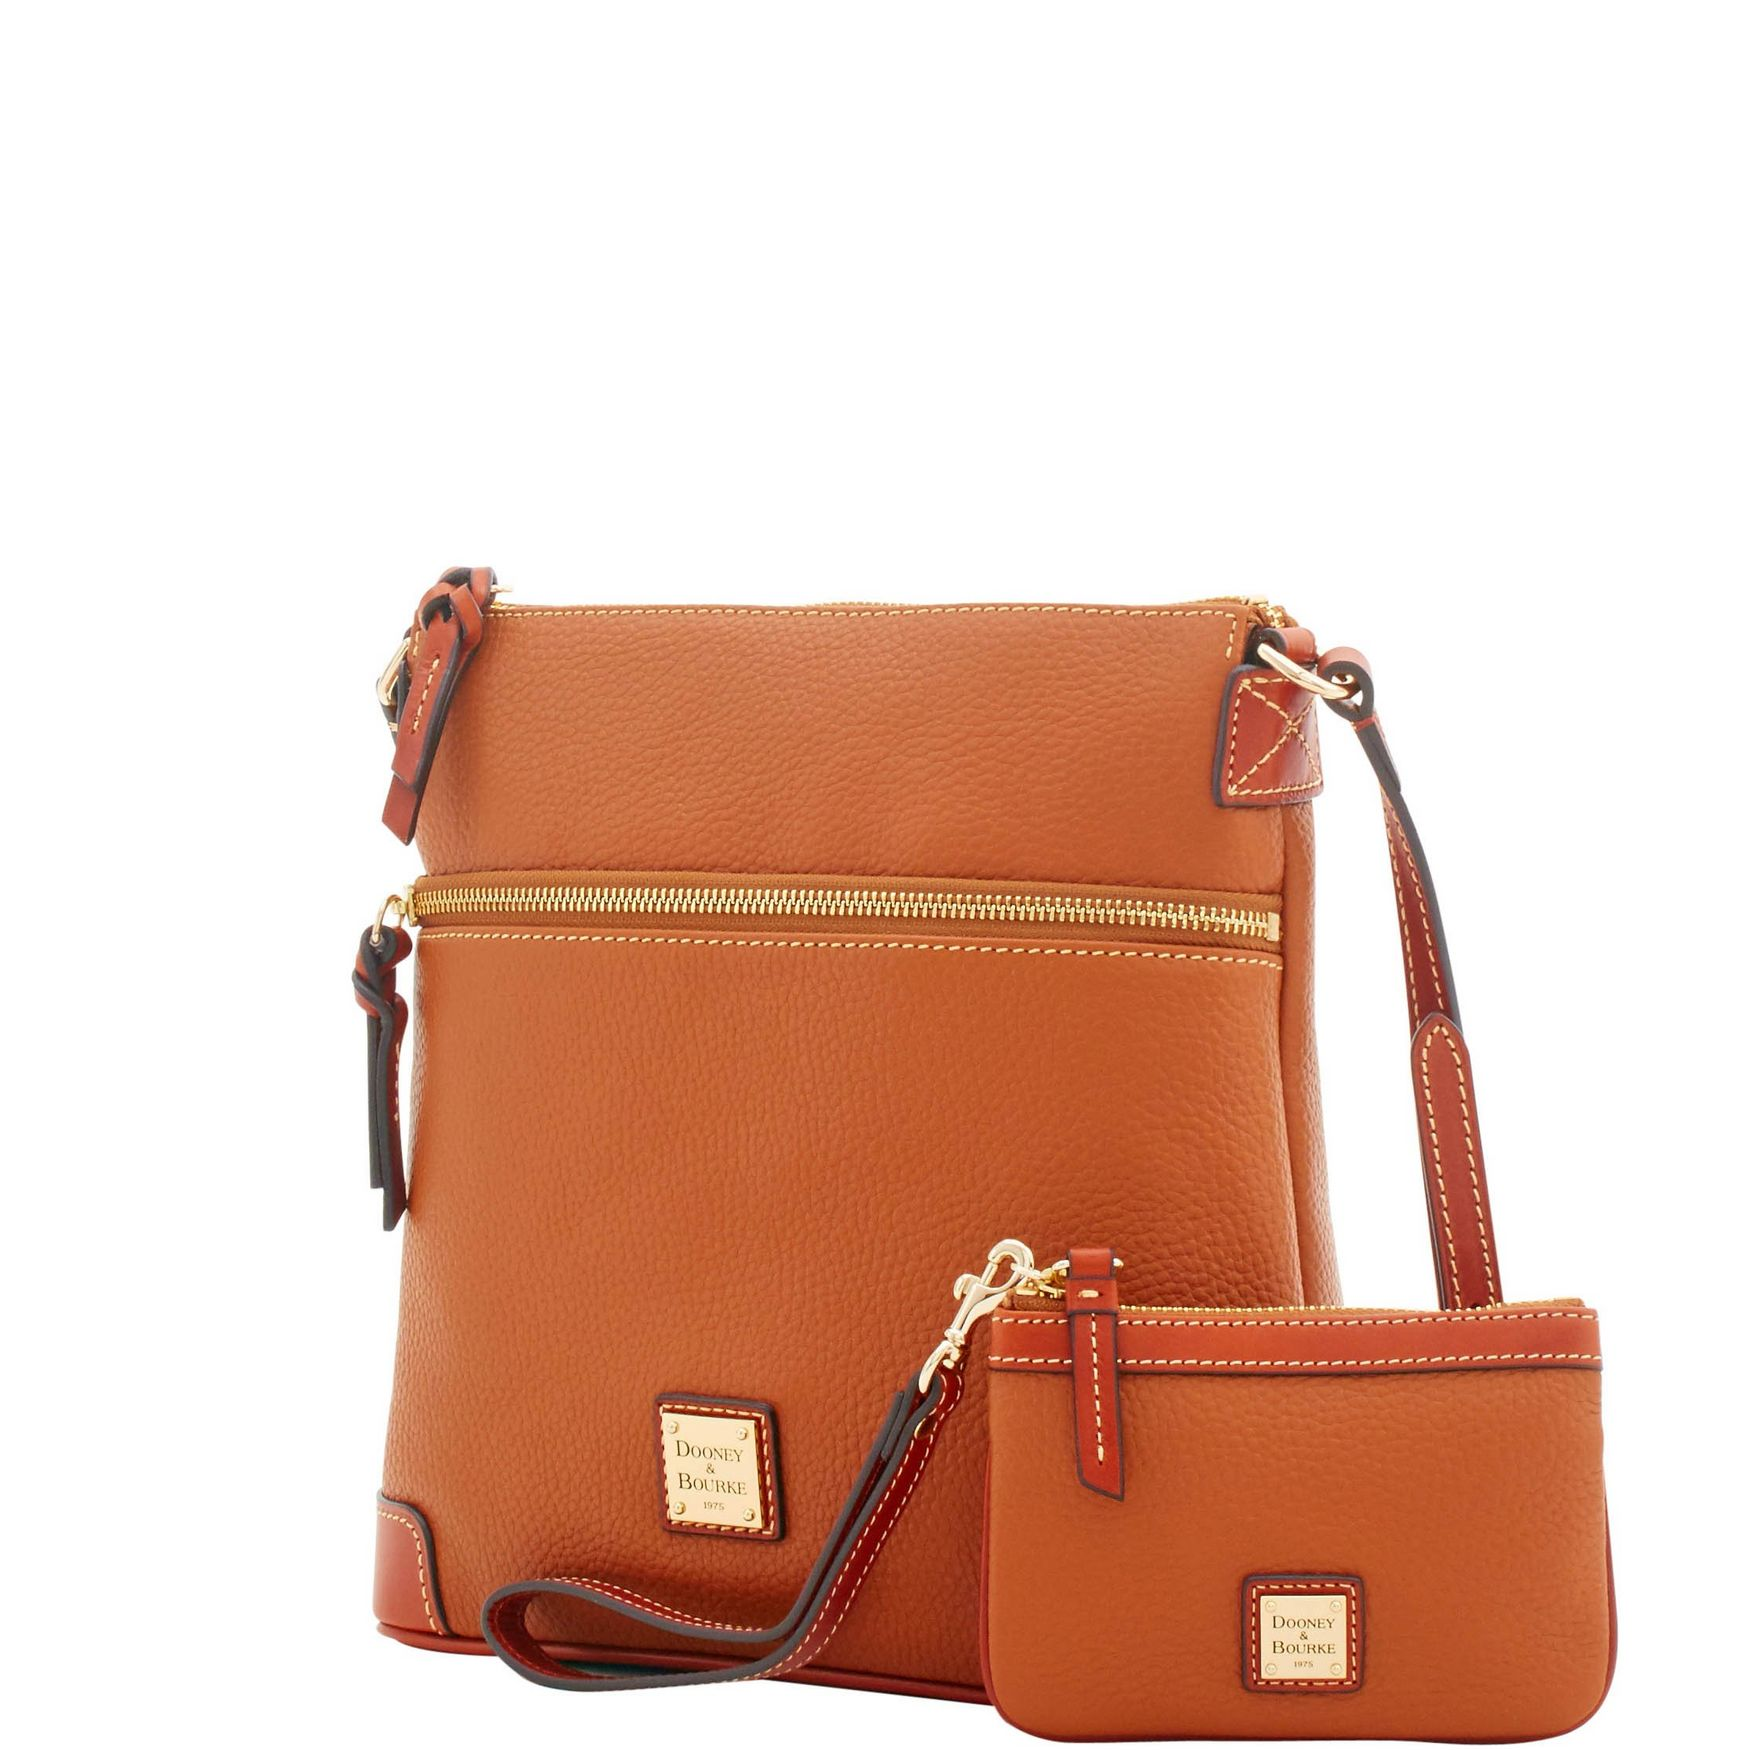 Dooney-amp-Bourke-Pebble-Grain-Crossbody-Medium-Wristlet-Shoulder-Bag thumbnail 12